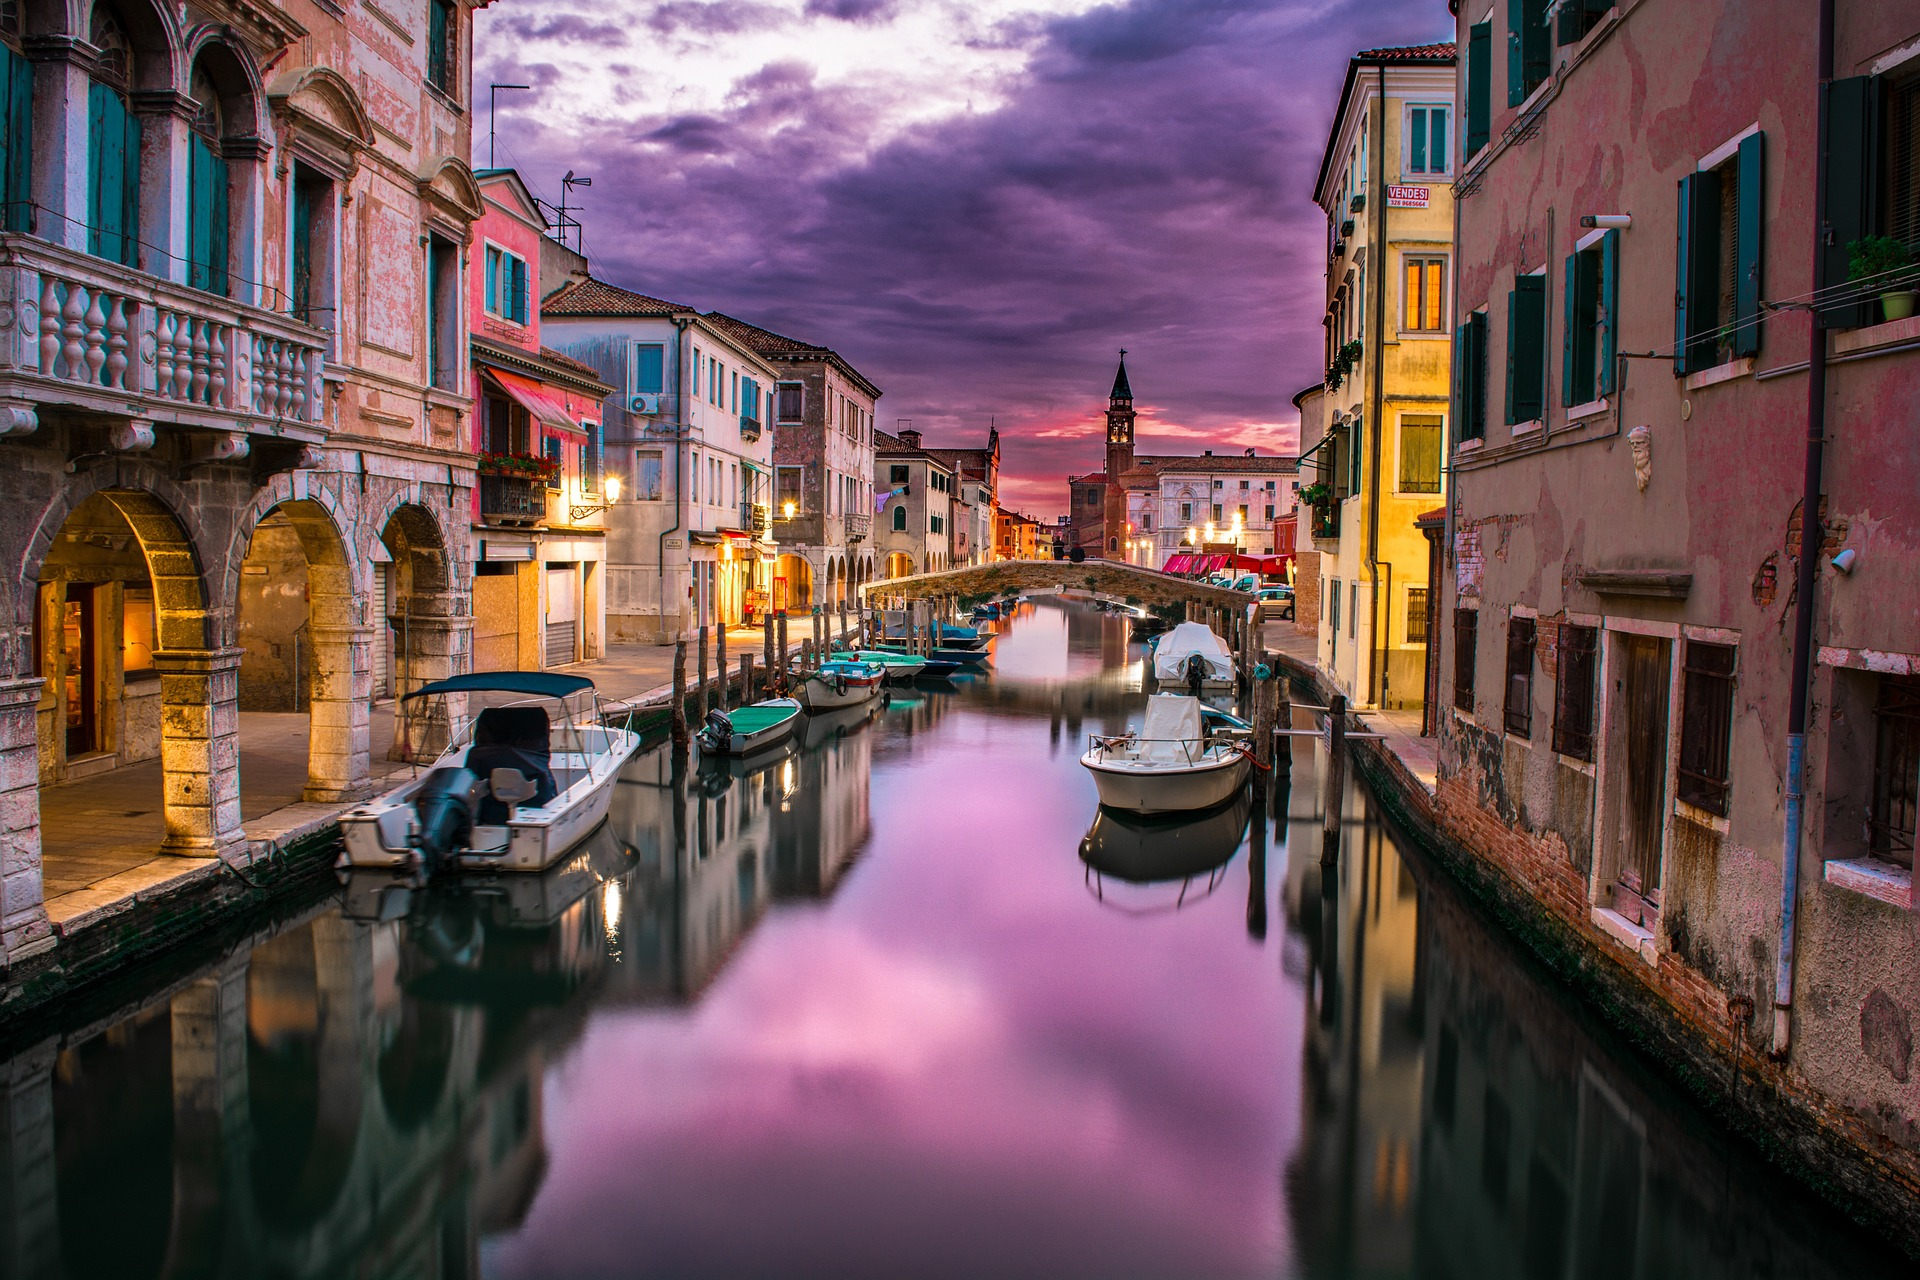 26Venice Italy The Travel Speak 51 Places To Visit Before You Die